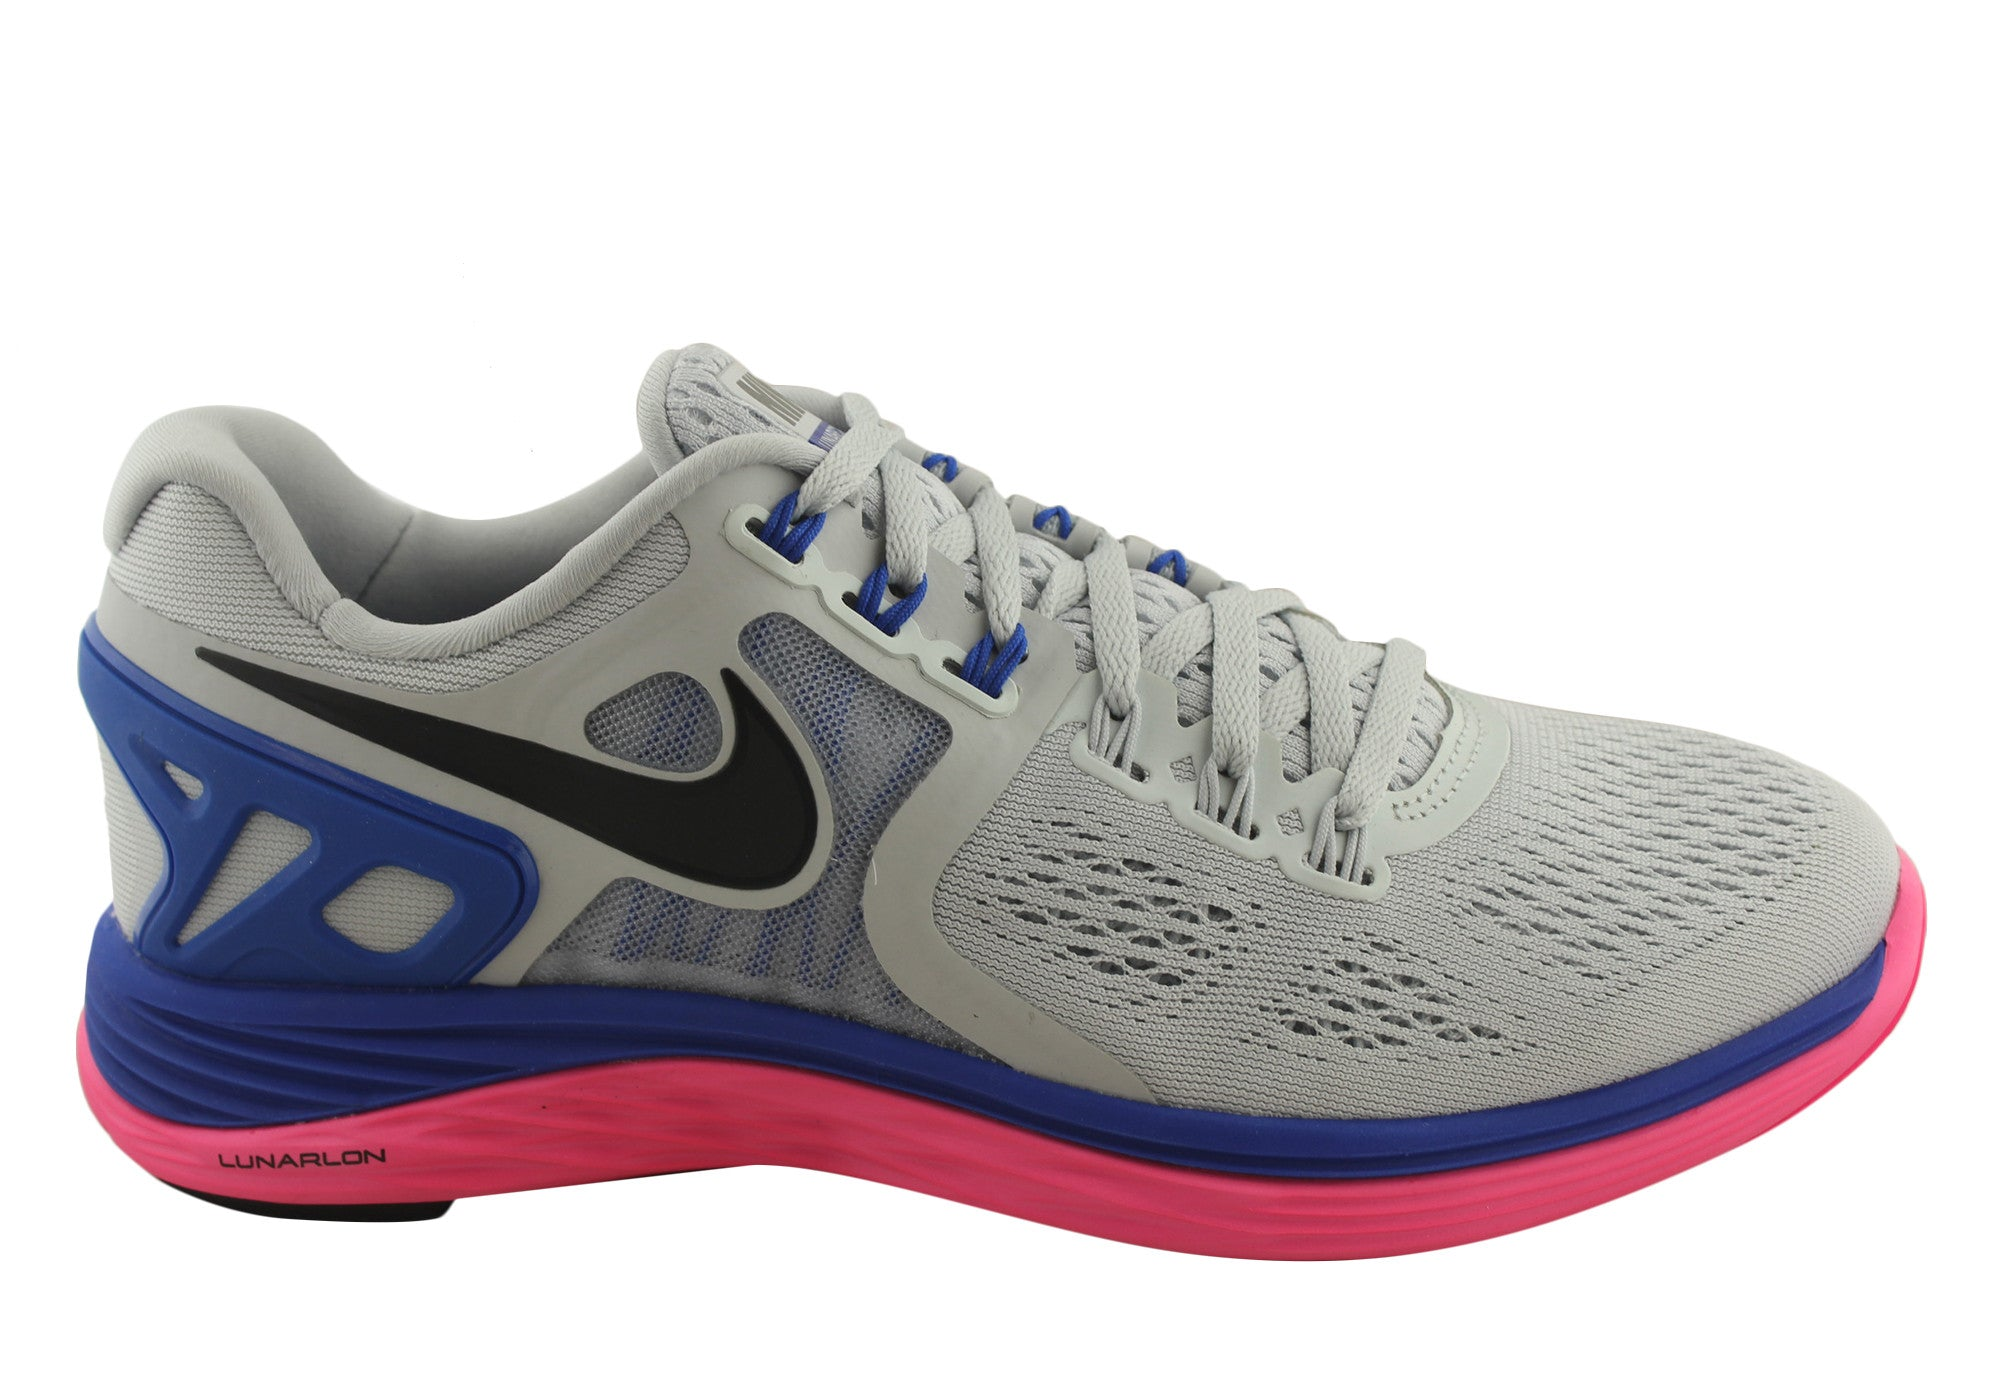 dc840dfb110 Nike Lunareclipse 4 Womens Comfortable Running Shoes